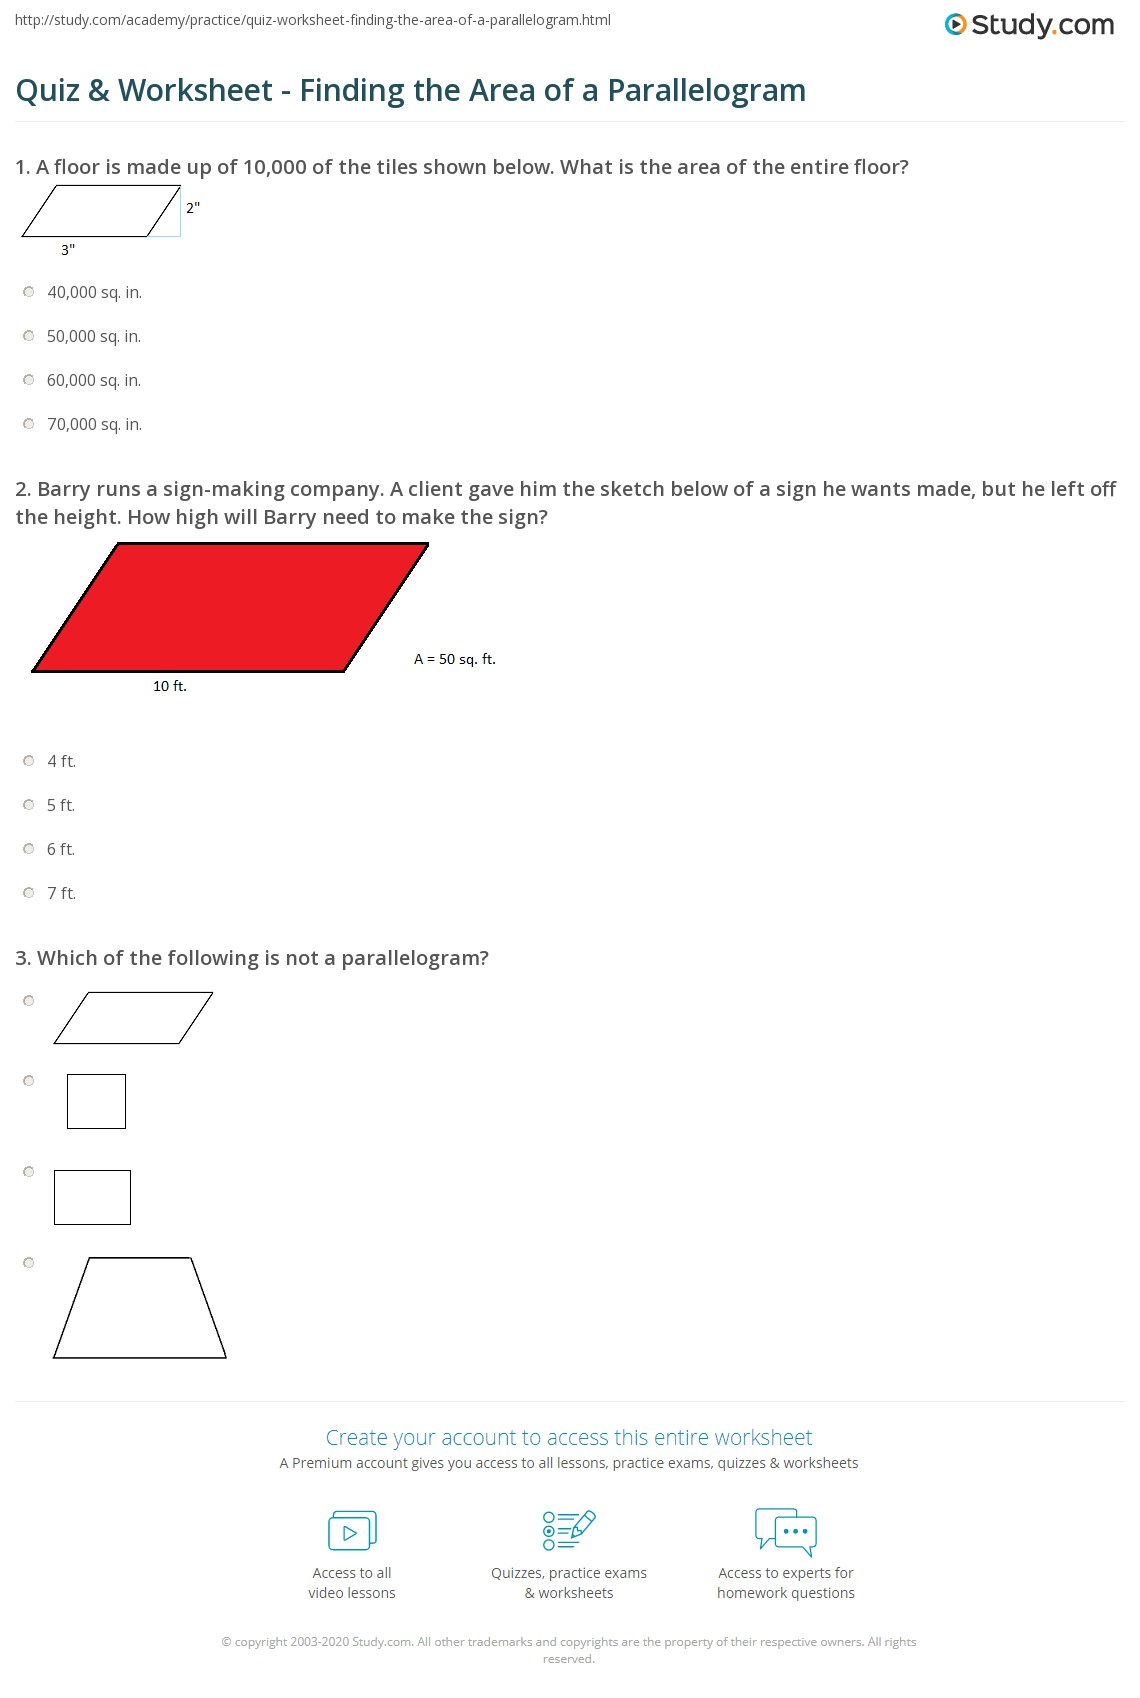 Worksheets Area Of A Parallelogram Worksheet quiz worksheet finding the area of a parallelogram study com 1 barry runs sign making company client gave him sketch below he wants made but left off height how hig